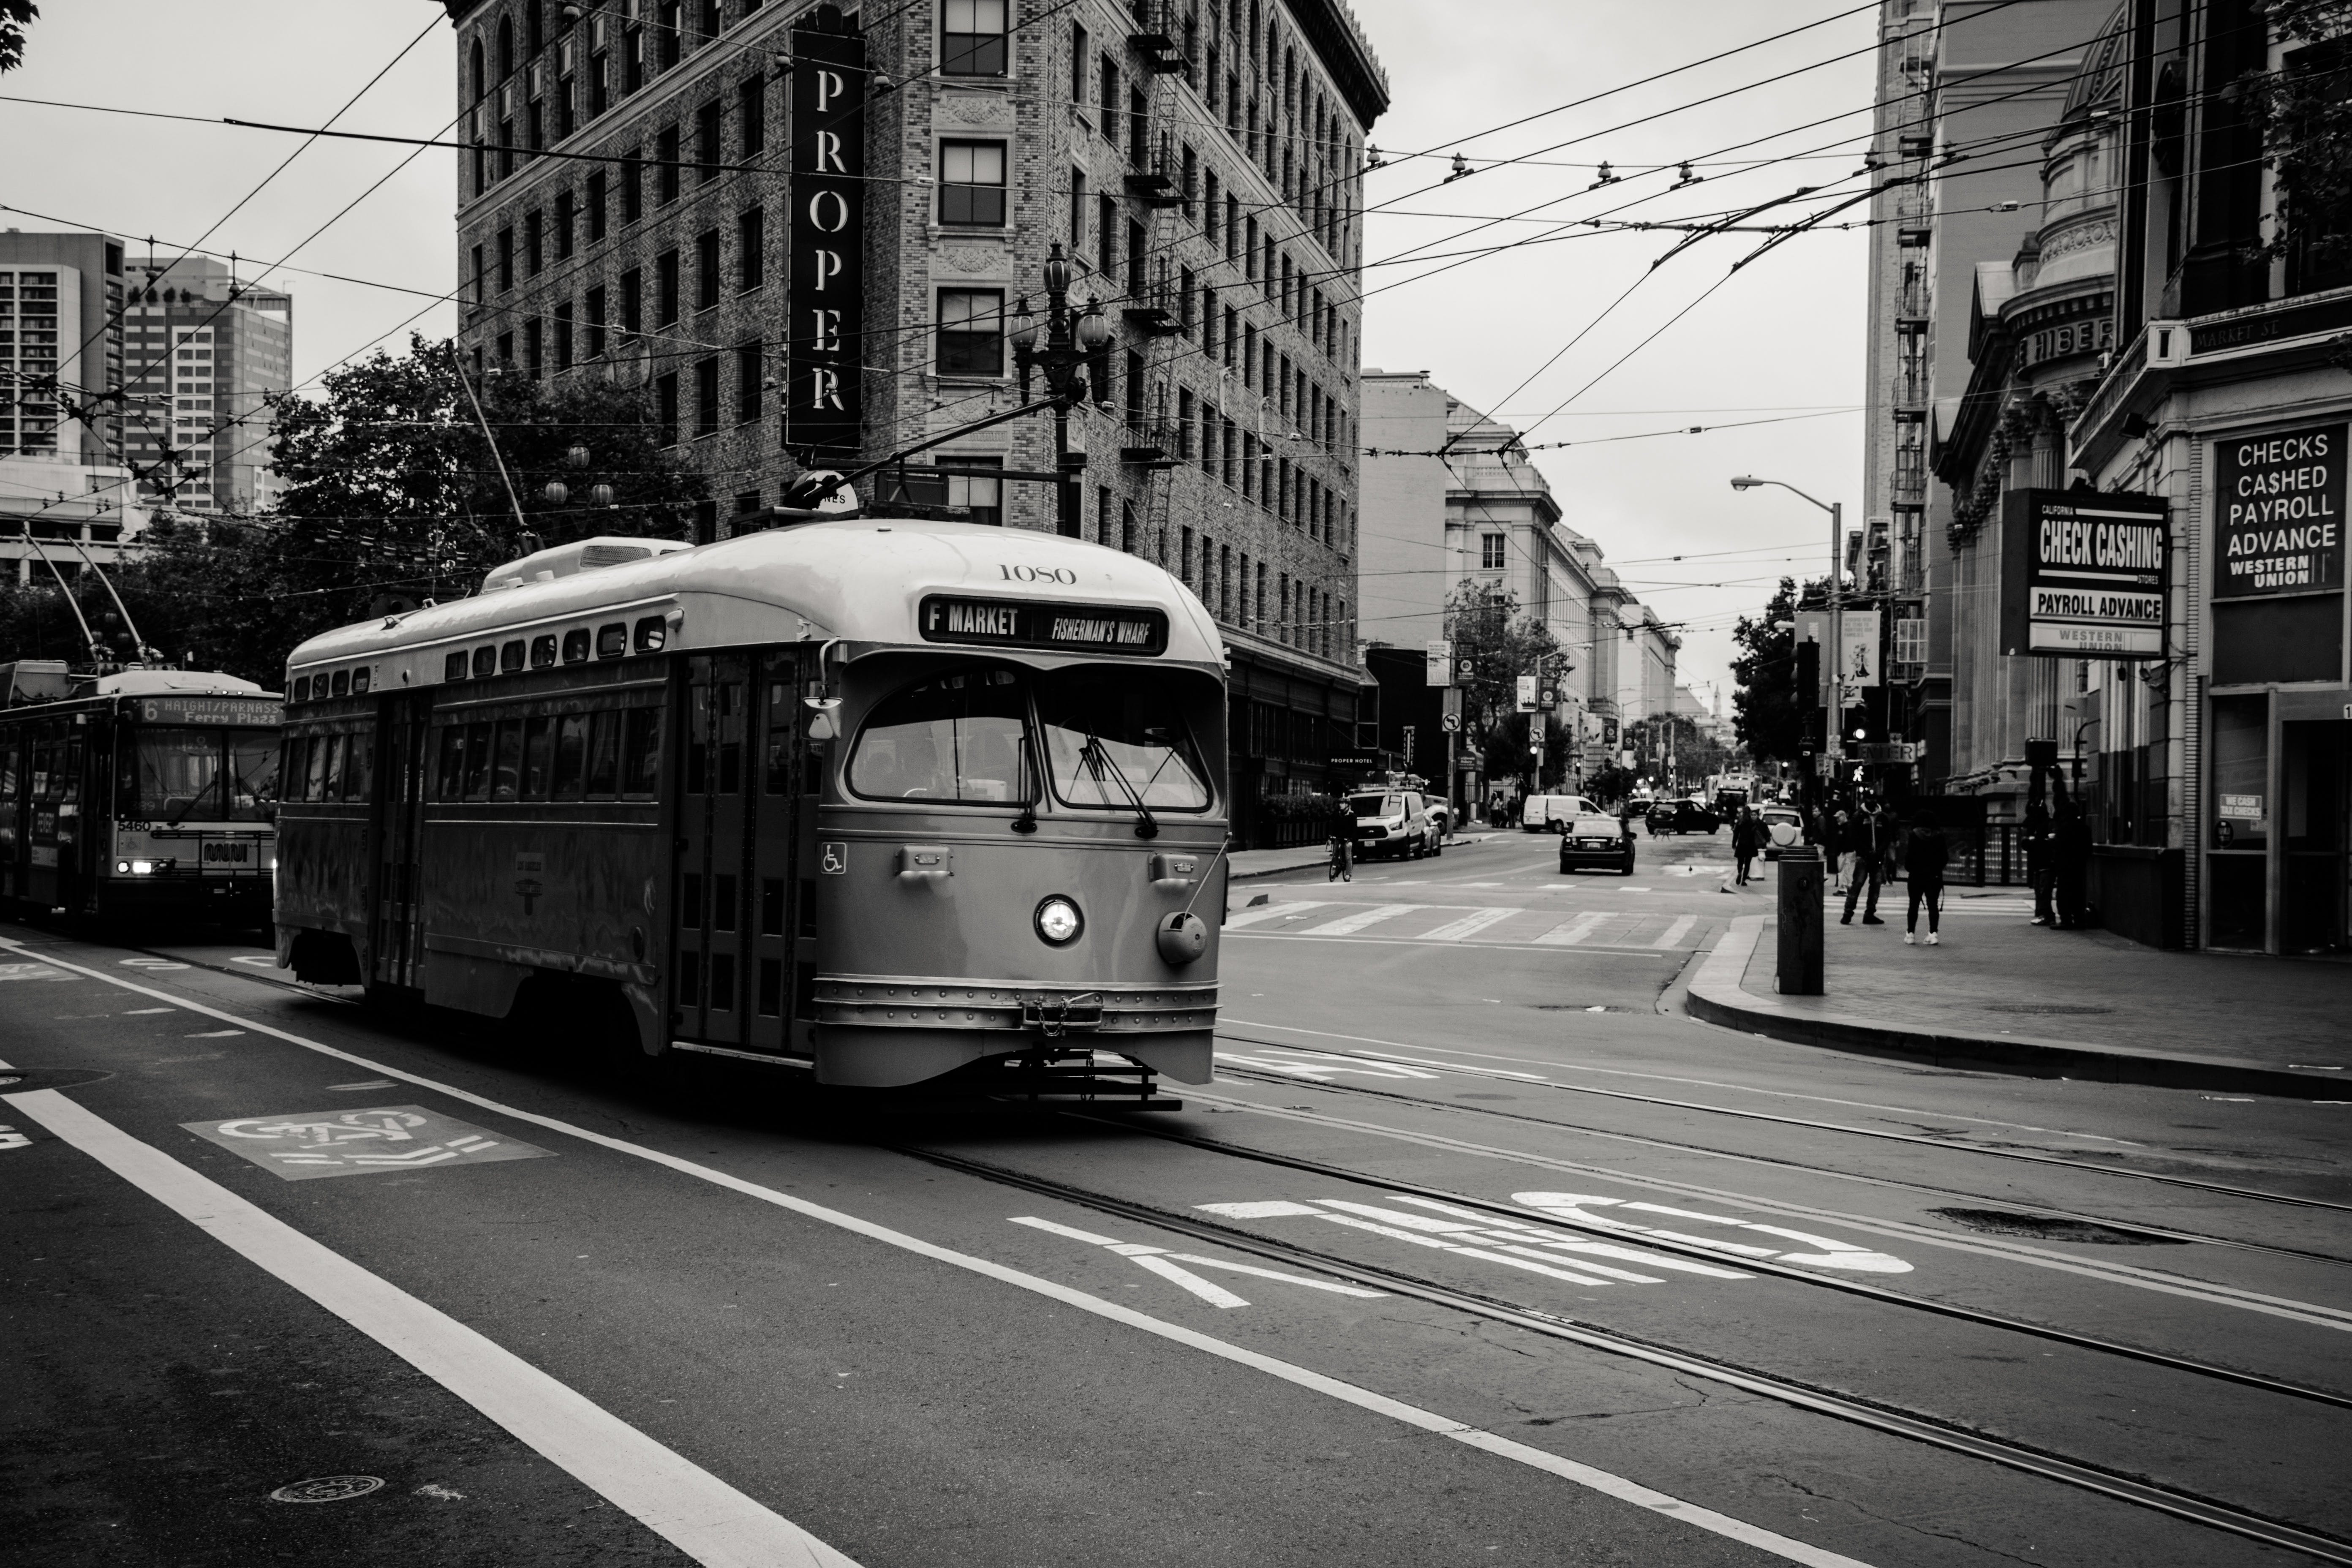 Grayscale Photography of Tram Near Buildings